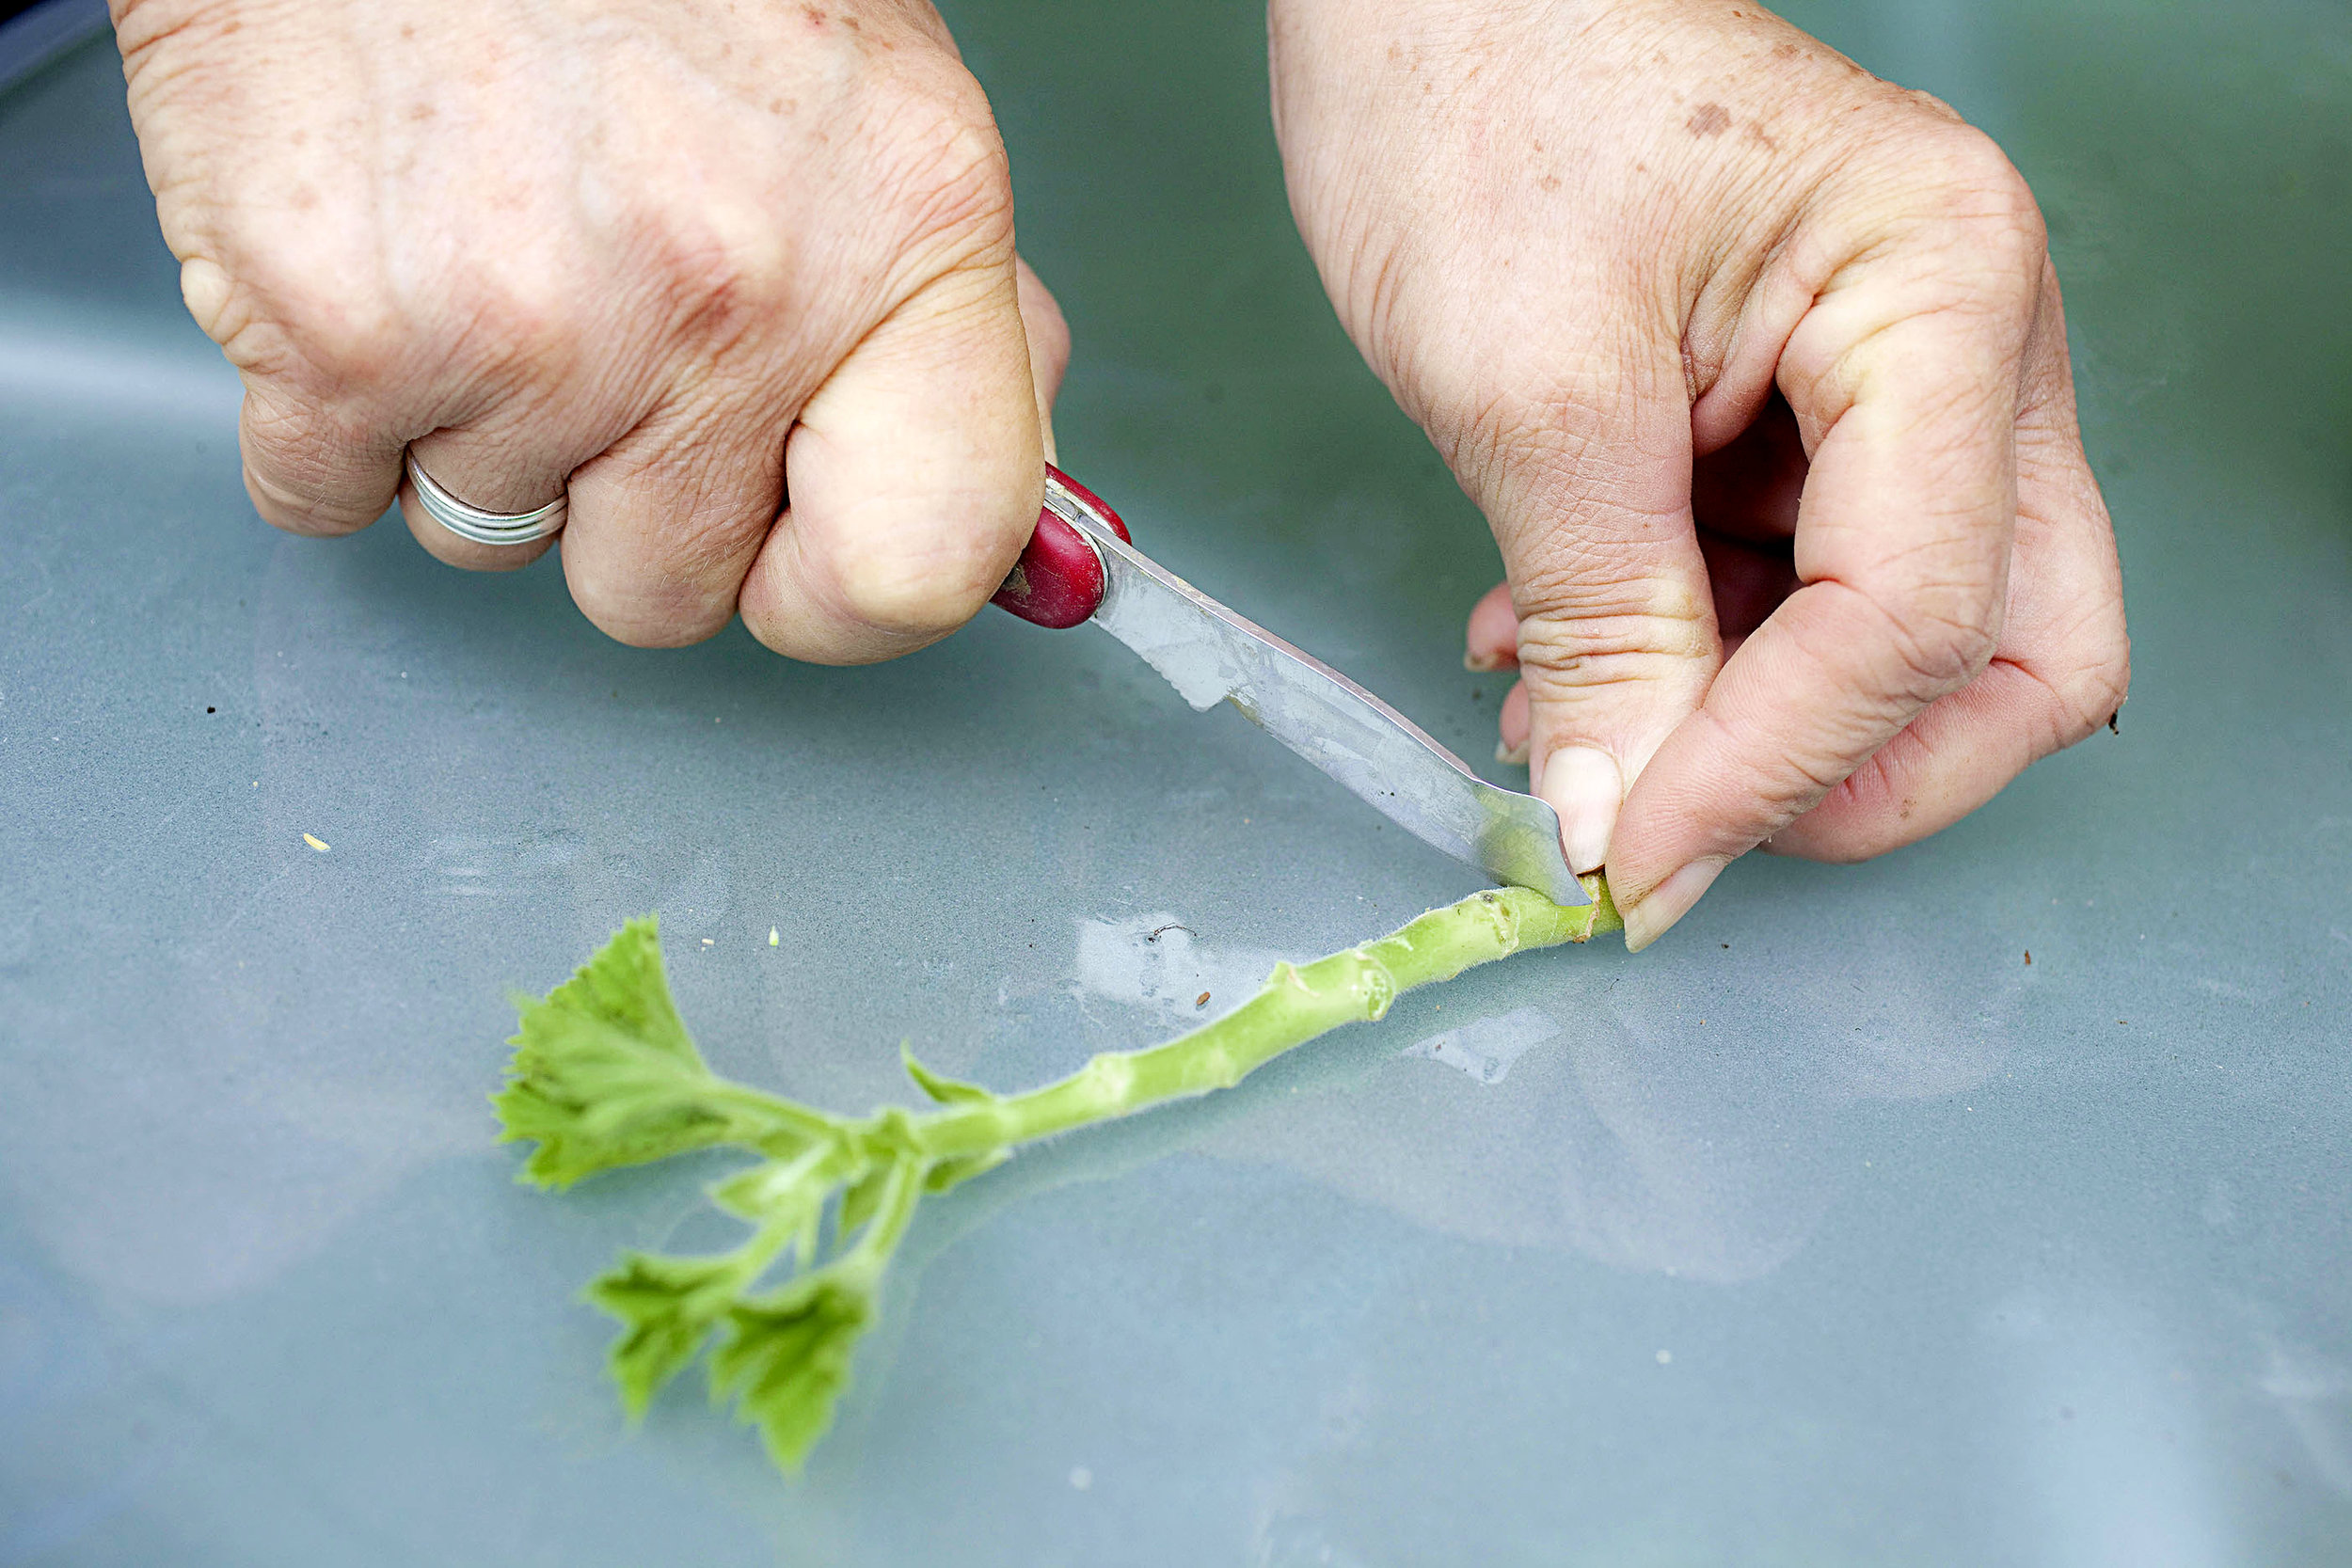 Strip off the lower leaves and trim with a sharp knife